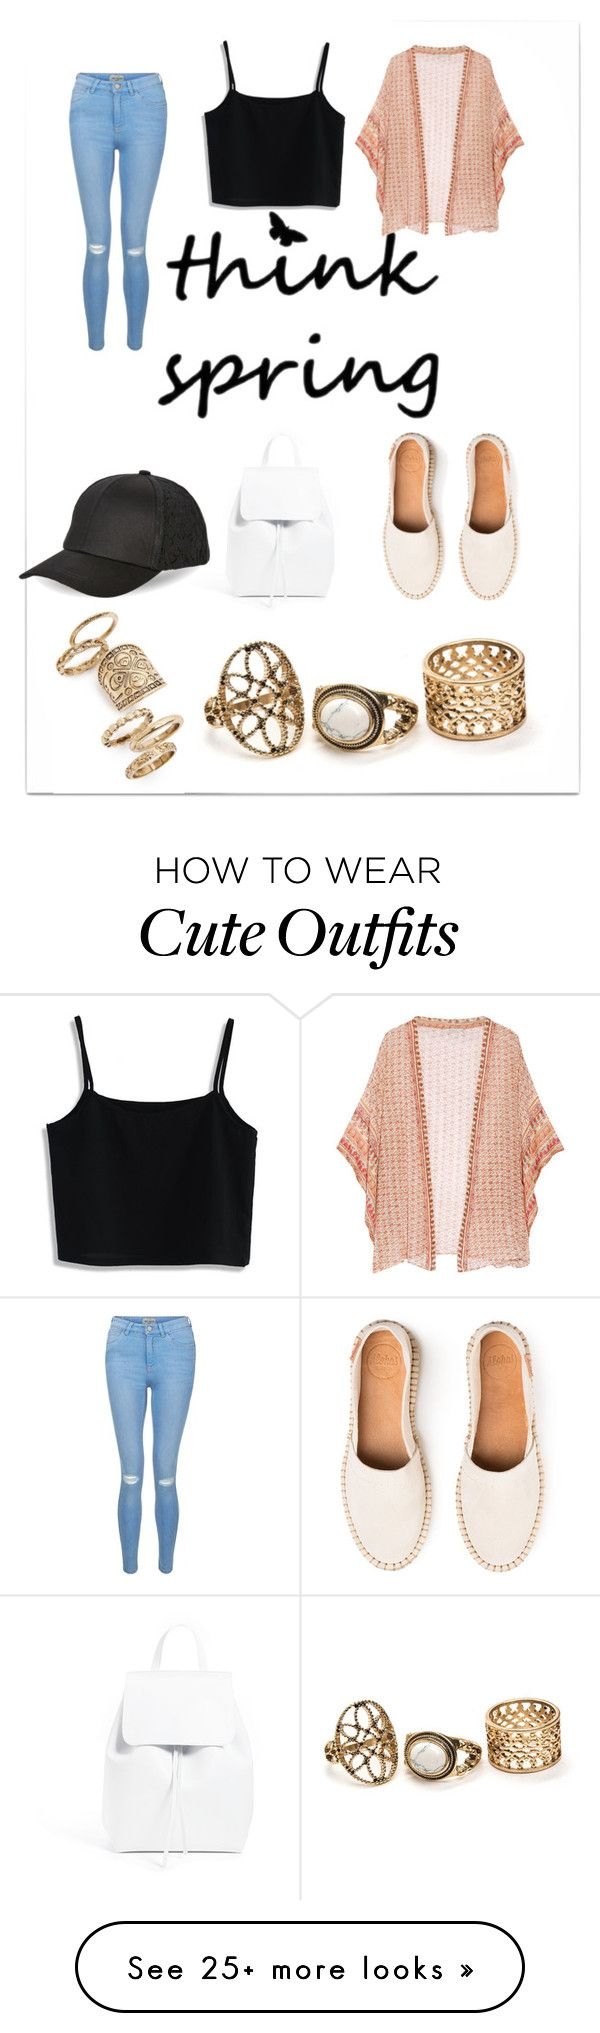 """""""Cardigan outfit"""" by everlyem on Polyvore featuring Mes Demoiselles..., Chicwish, New Look, Mansur Gavriel, BCBGeneration, Topshop, cutecardigan and springlayers"""